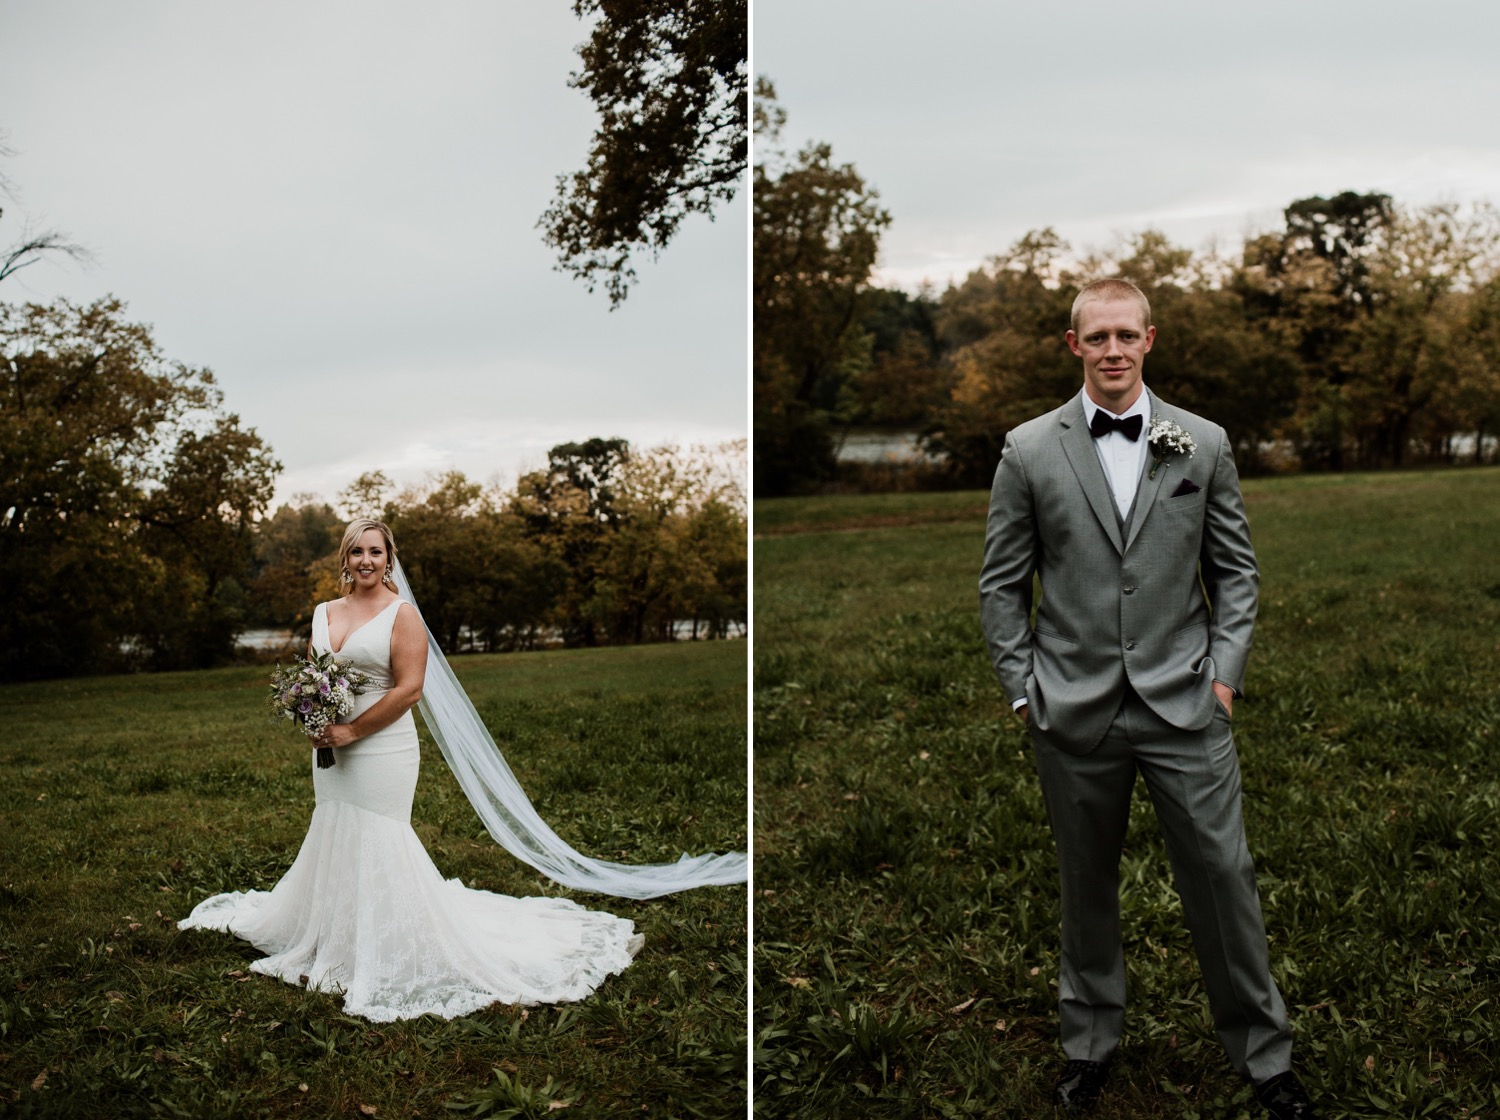 16_Photographer_Bridesmaids_Groom_Groomsmen_Bride_Strongwater_Photography_ColumbusWeddingPhotographer_ColumbusWedding_FloridaWeddingPhotographer_Vue_Wedding_Ohio_Jorgensen_Columbus.jpg